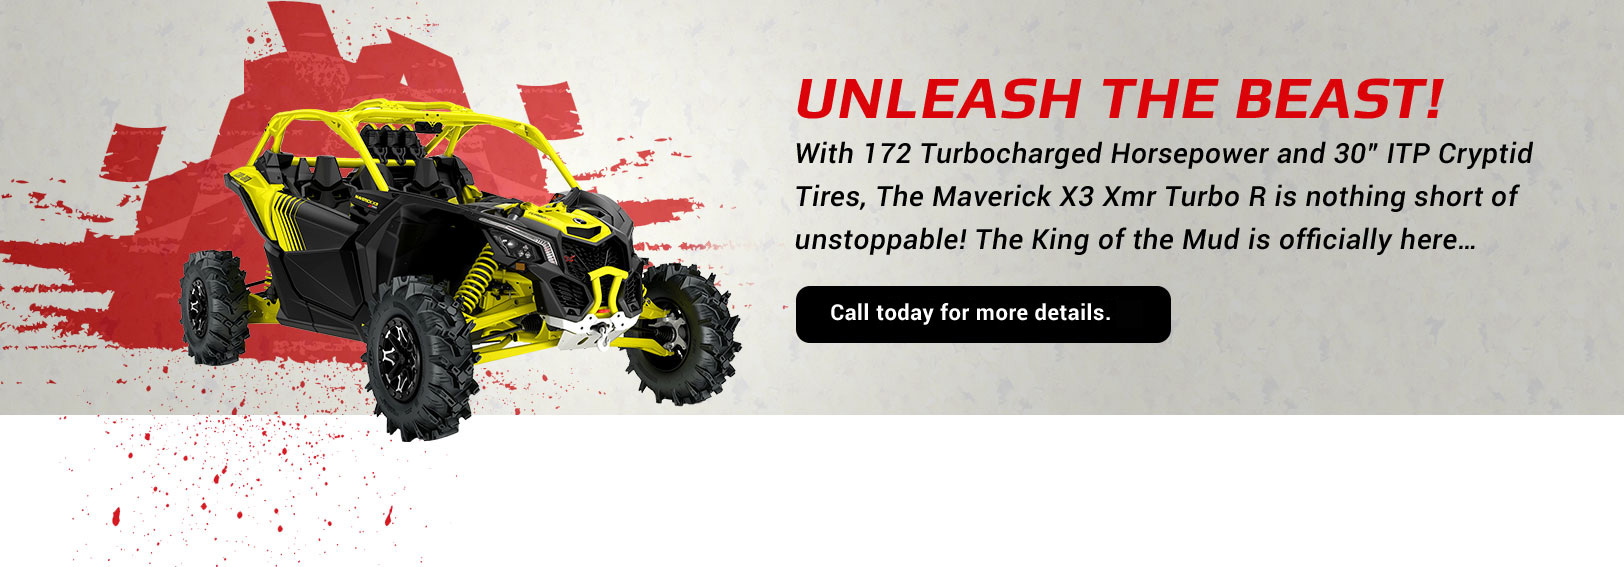 "Unleash the Beast!, With 172 Turbocharged Horsepower and 30"" ITP Cryptid Tires, The Maverick X3 Xmr Turbo R is nothing short of unstoppable! The King of the Mud is officially here…..Call today for more details."